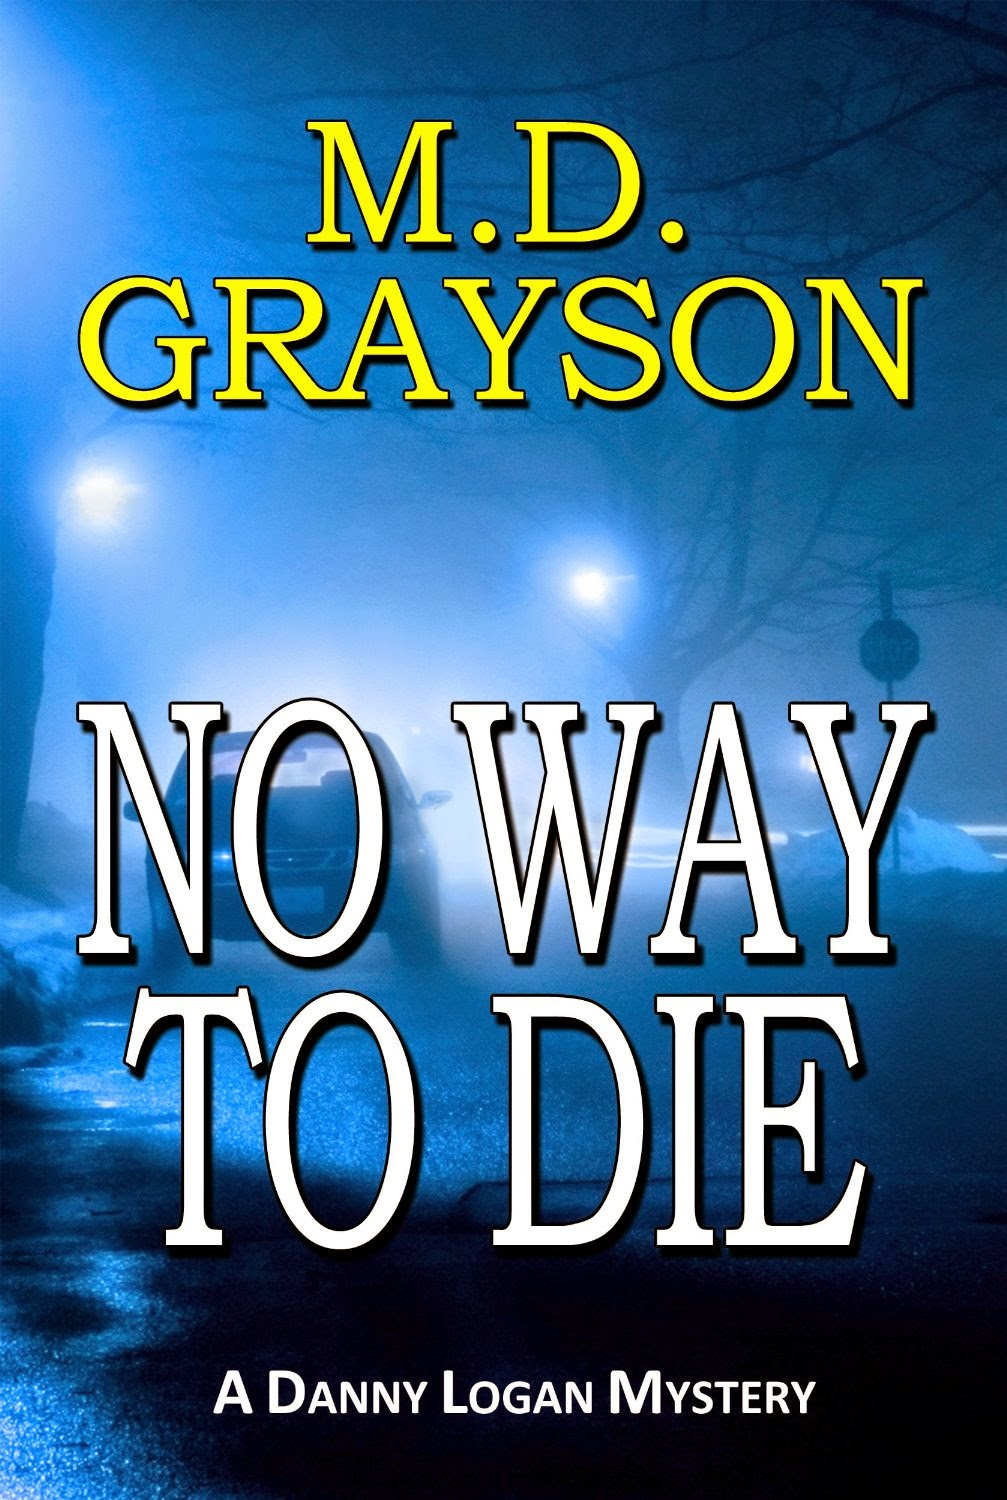 http://www.amazon.com/Way-Die-Danny-Logan-Mystery-ebook/dp/B008N1YI5Q/ref=sr_1_3?s=books&ie=UTF8&qid=1419170880&sr=1-3&keywords=grayson+mystery